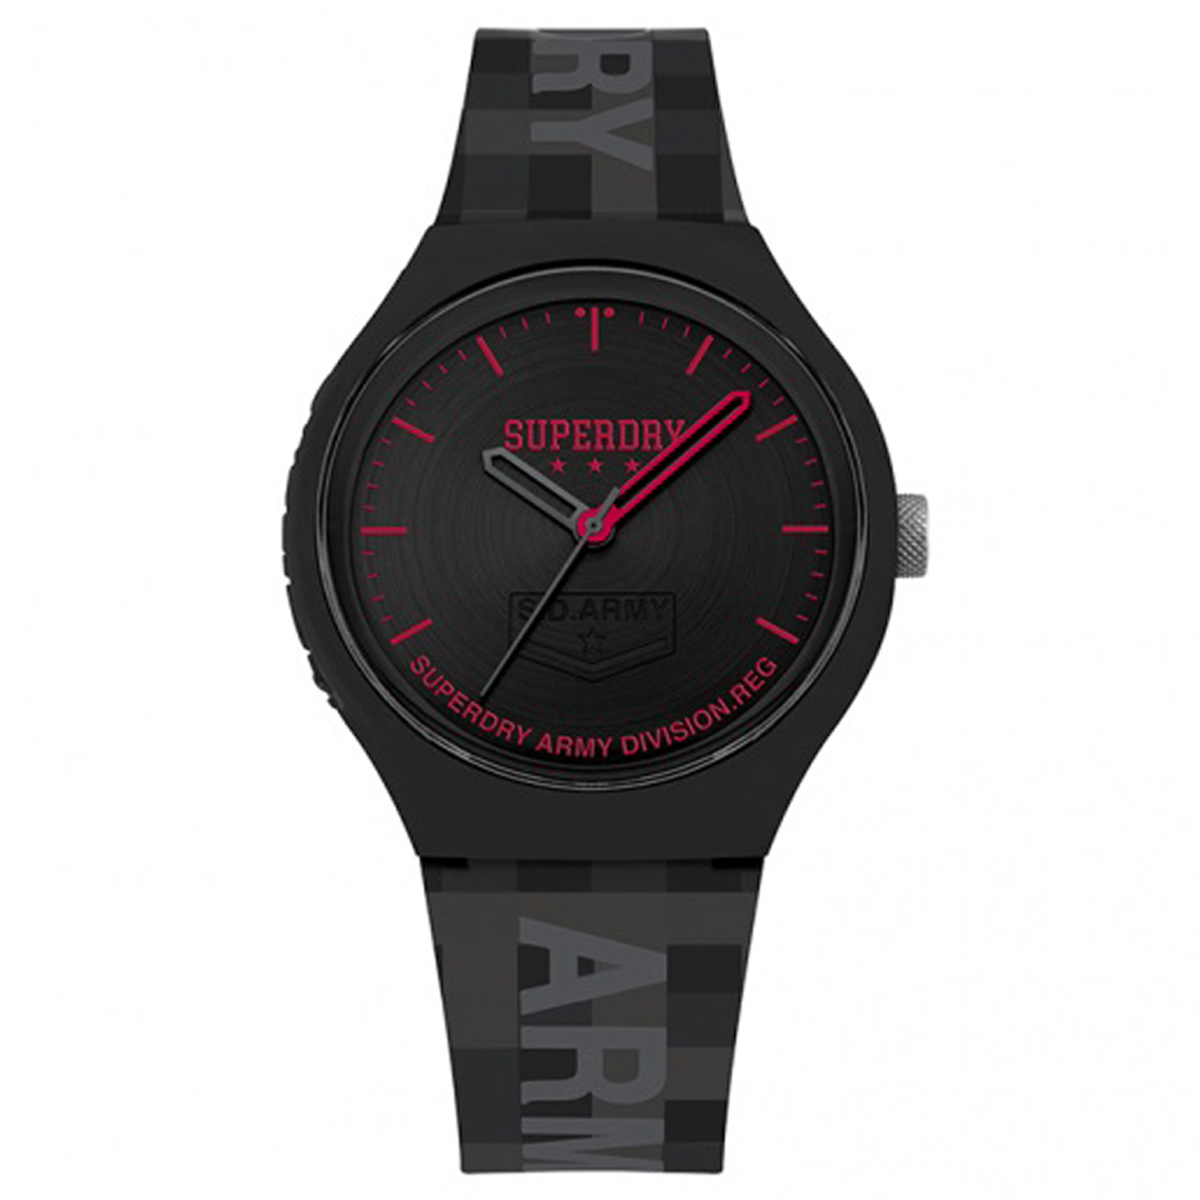 Montre silicone \'Superdry\' noir rouge - 45 mm - [Q8791]